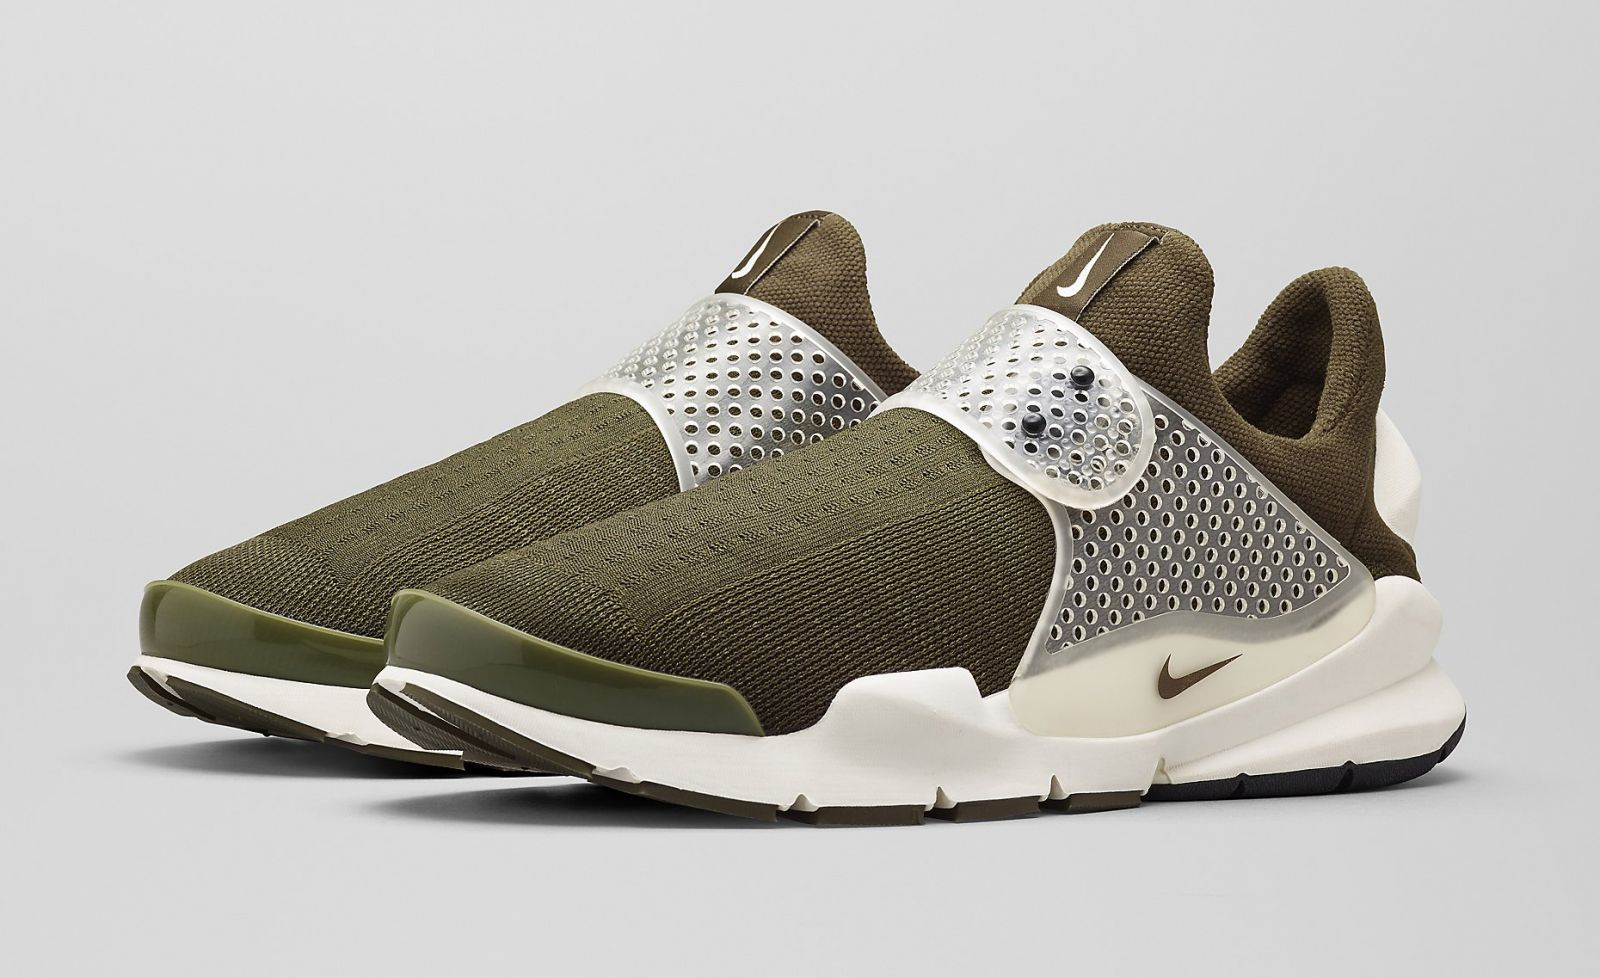 new product 099a8 5d66b Release Date fragment design x Nike Sock Dart